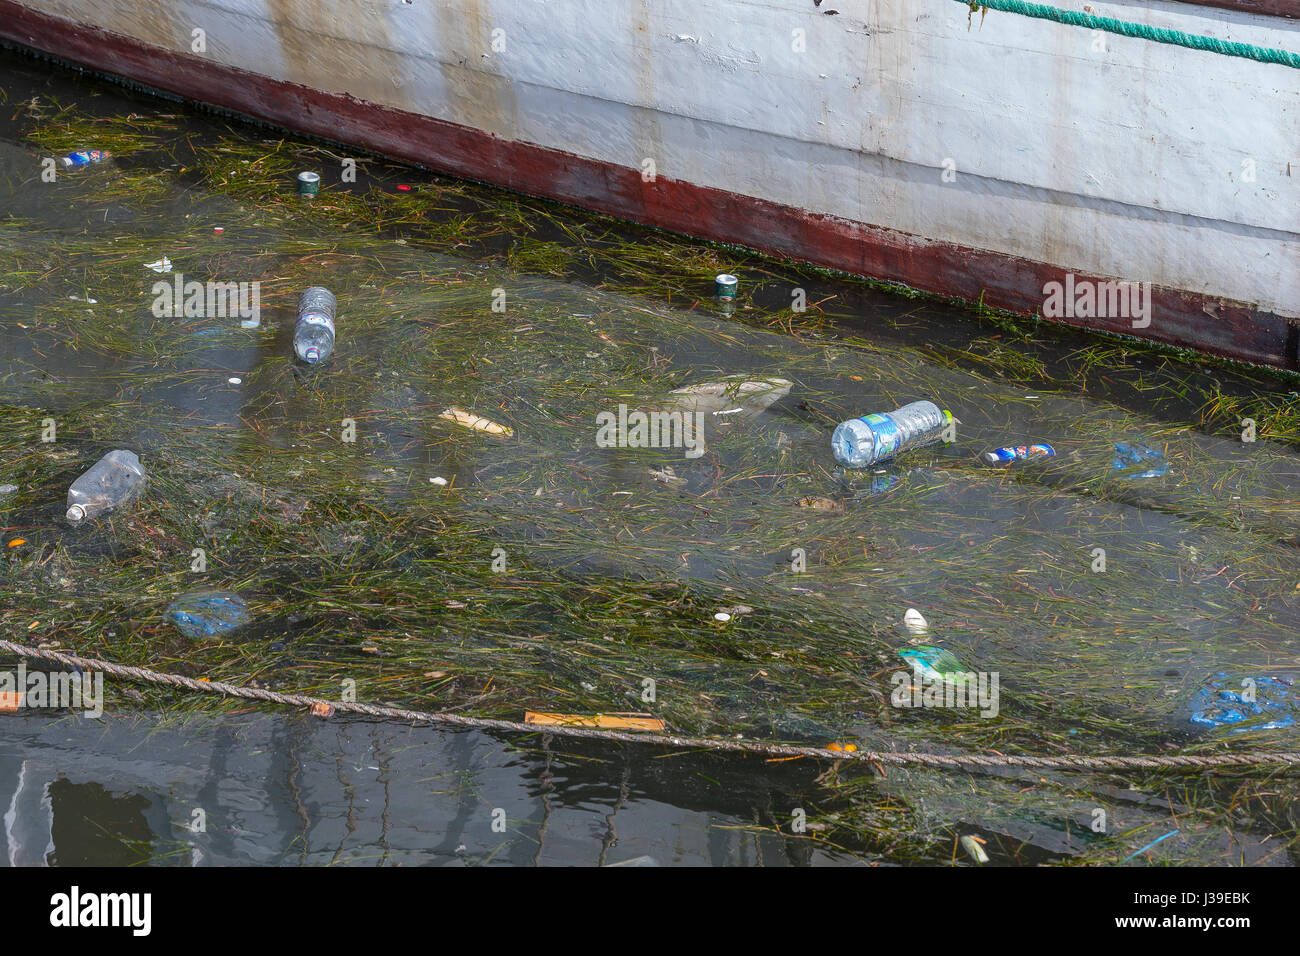 Concept of polution : Fishing boats on the dirty beach full of plastic trashes - Stock Image